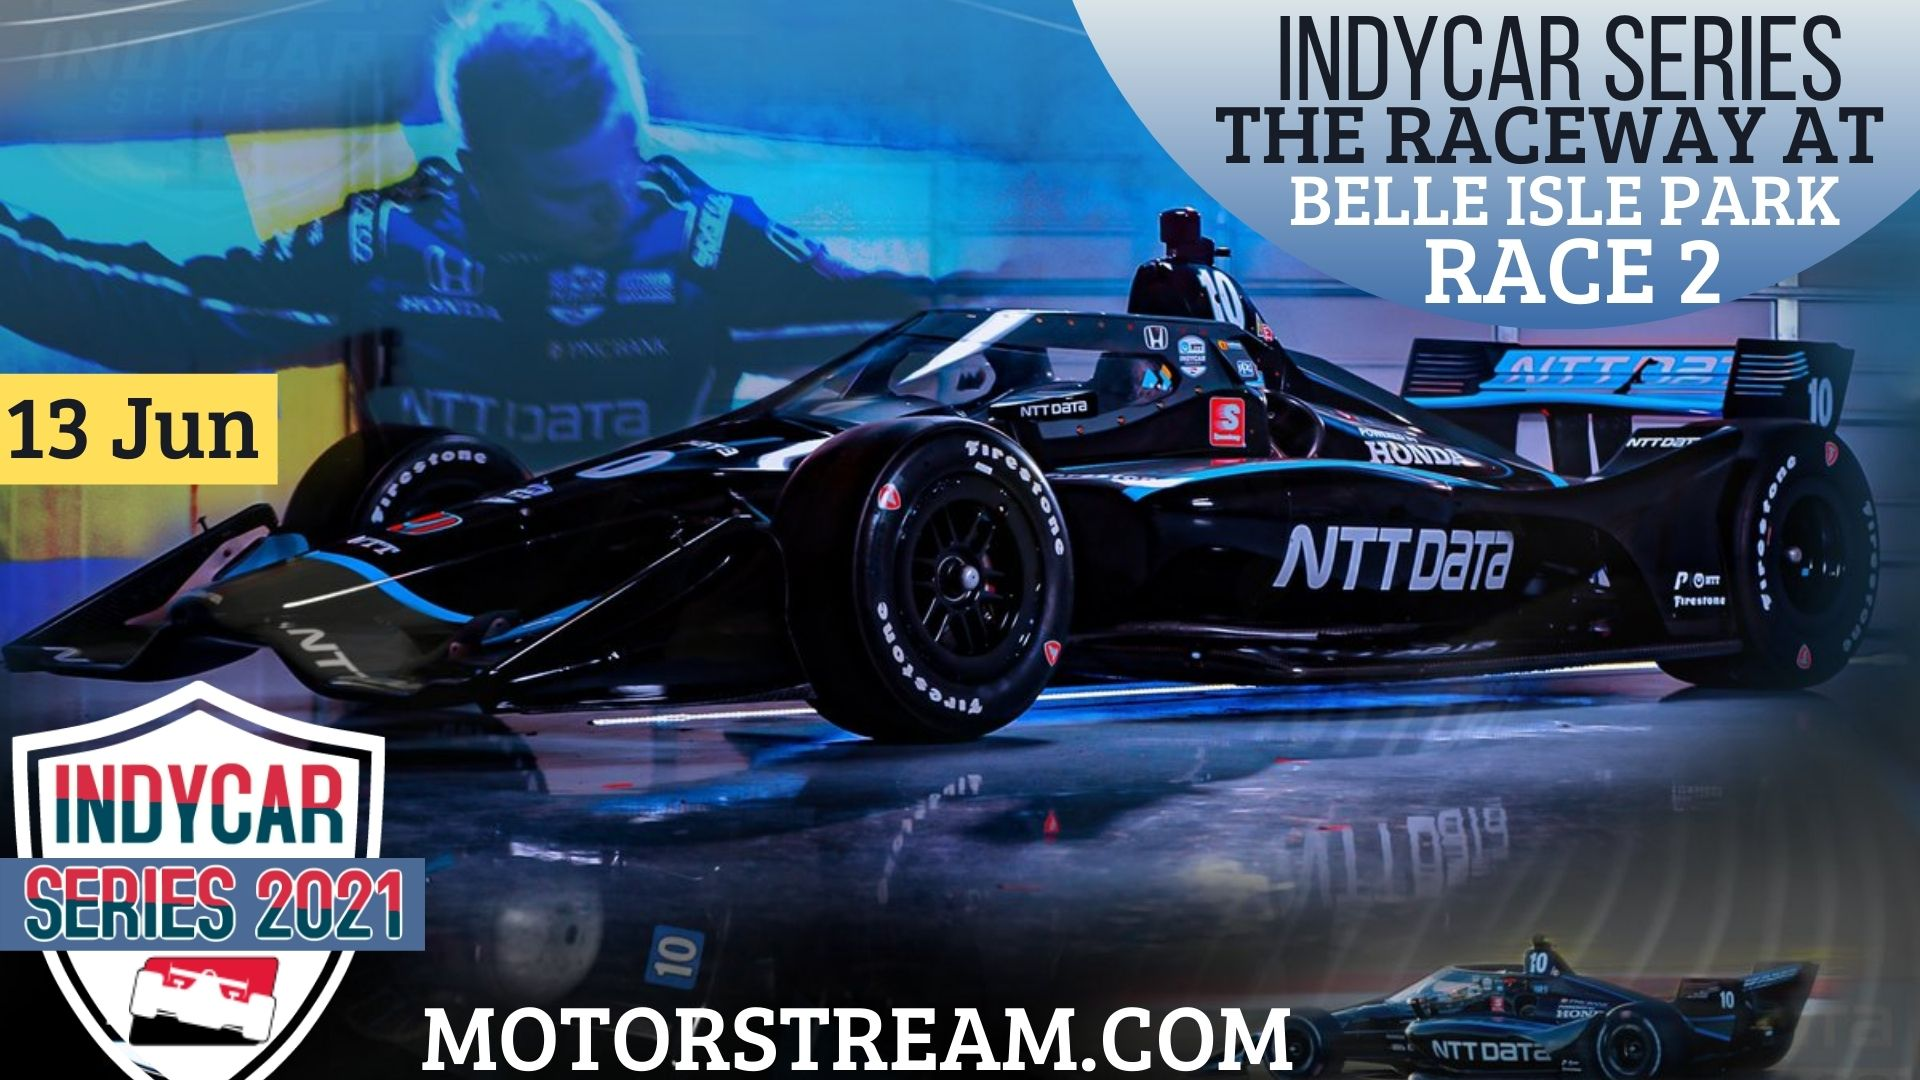 The Raceway At Belle Isle Park Race 2 Grand Prix Live Stream 2021